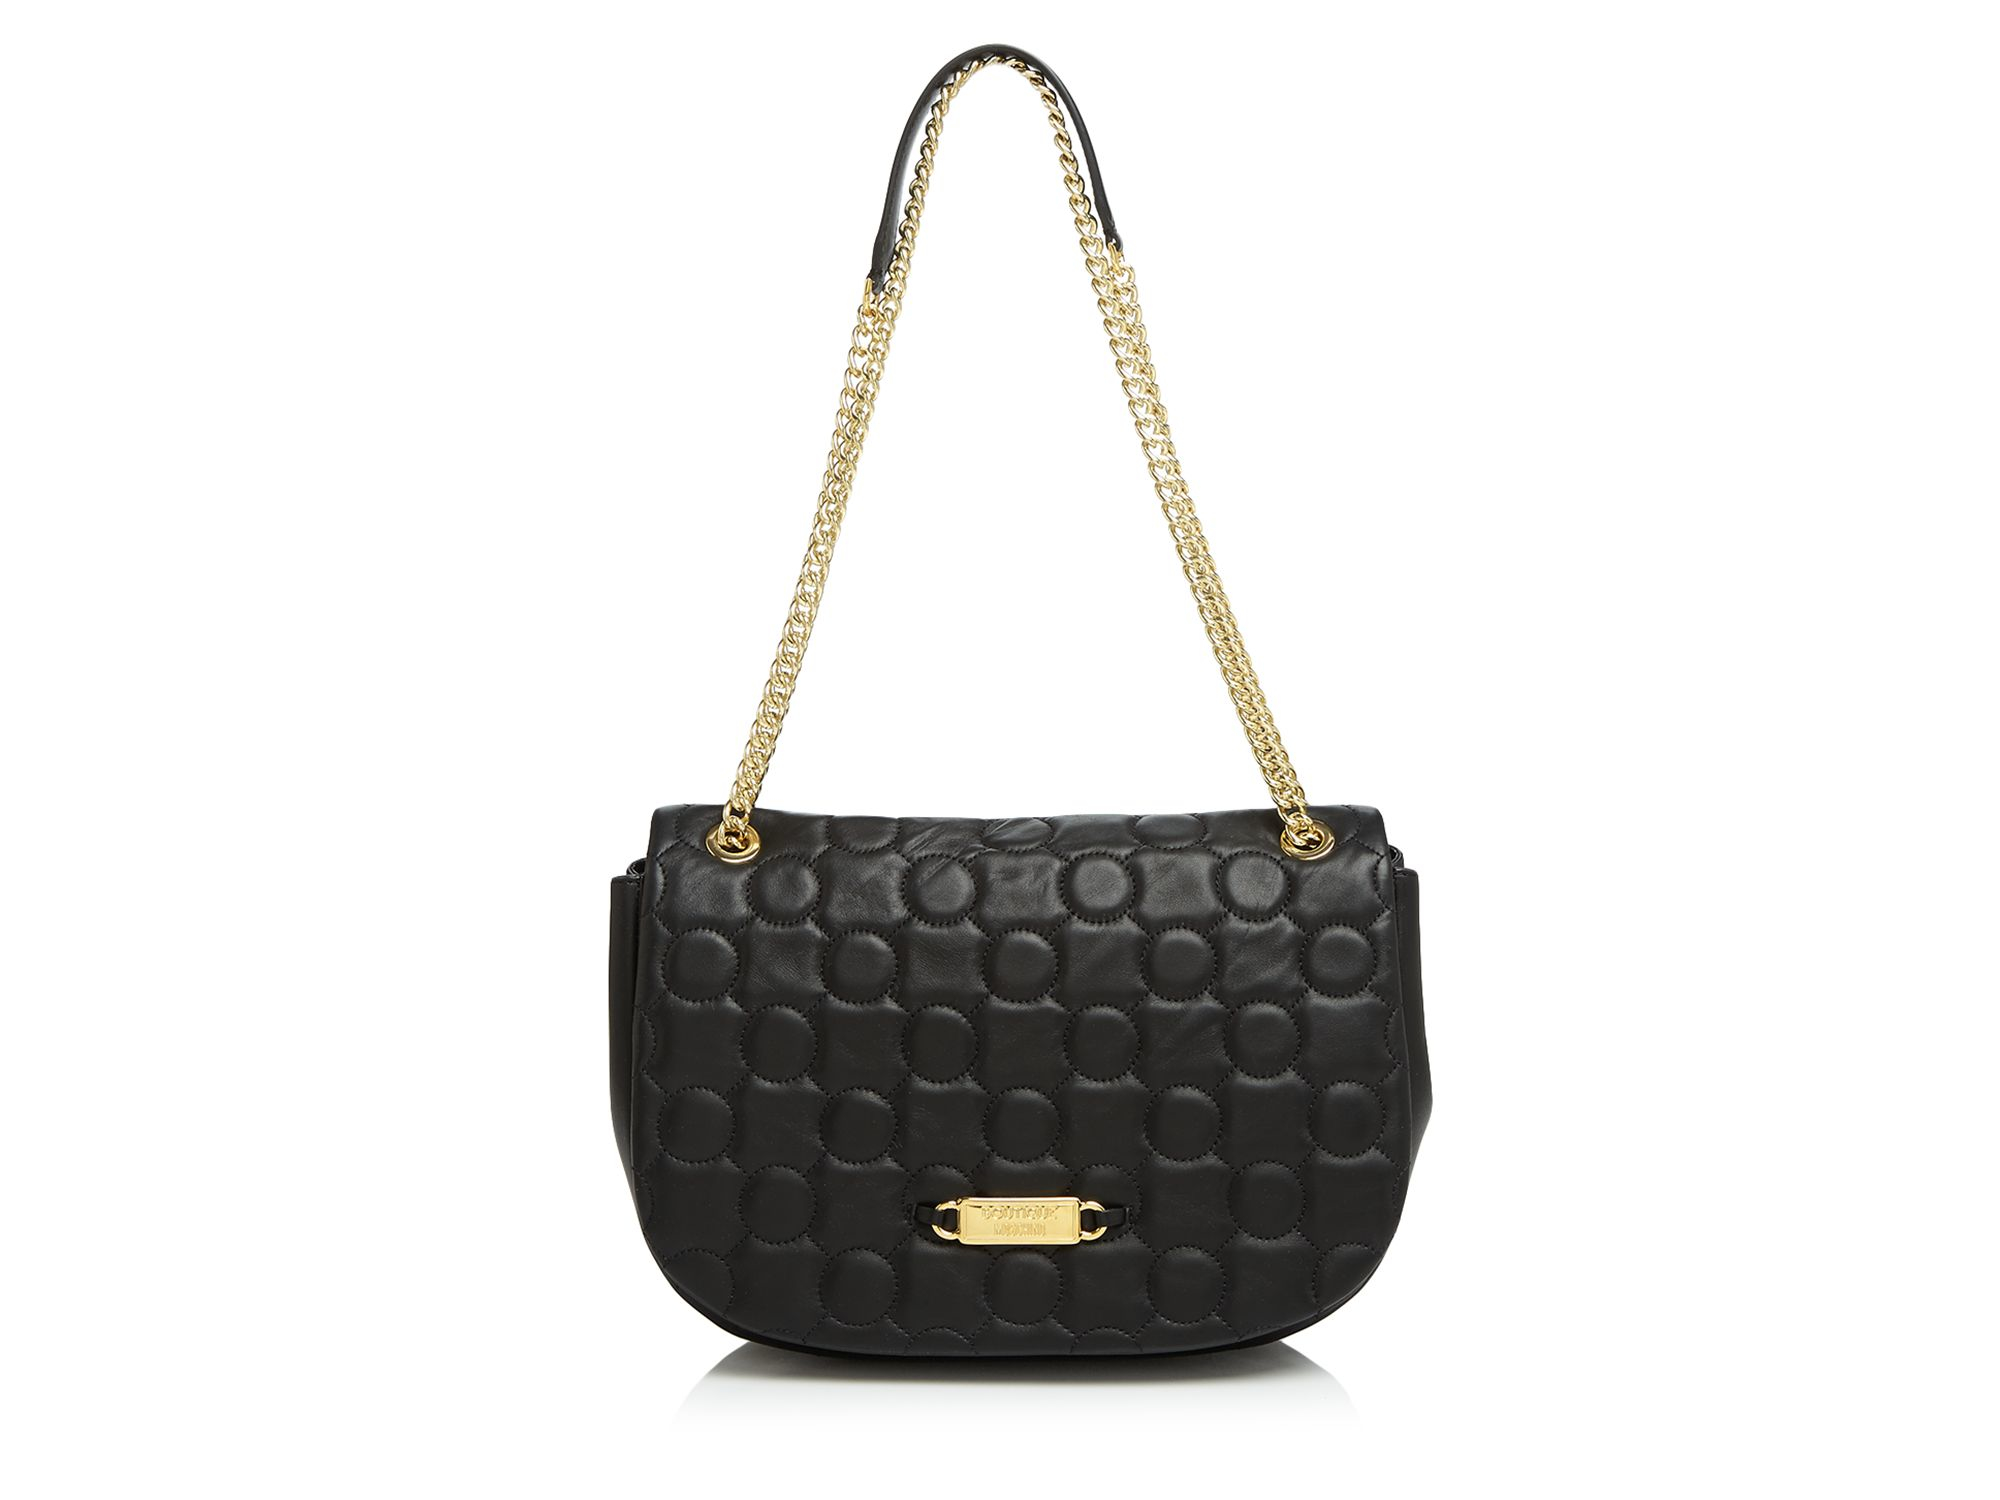 Boutique moschino Shoulder Bag - Quilted Medium Gold Chain in ...